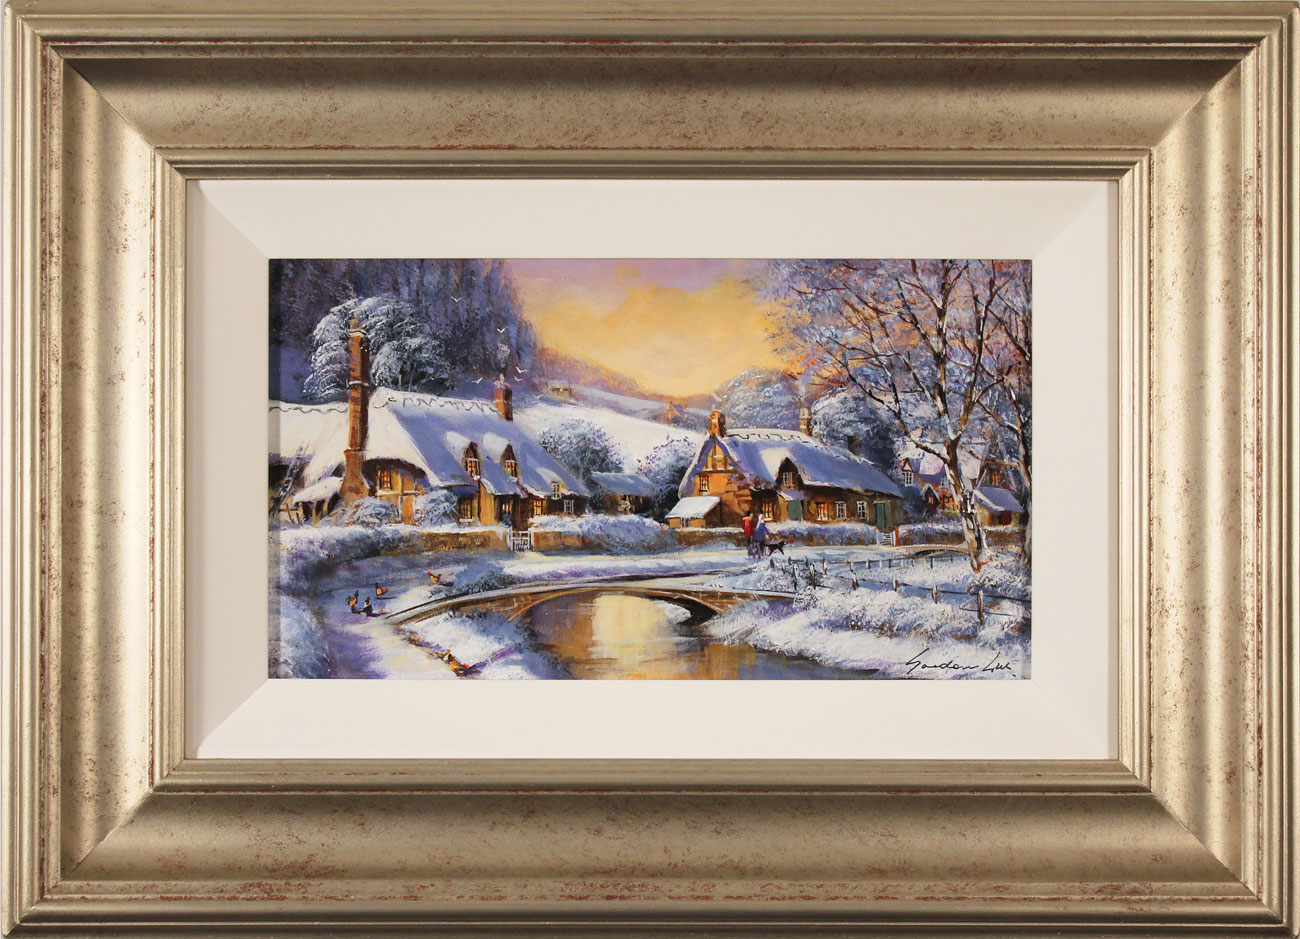 Gordon Lees, Original oil painting on panel, Cotswolds Village in Winter, click to enlarge